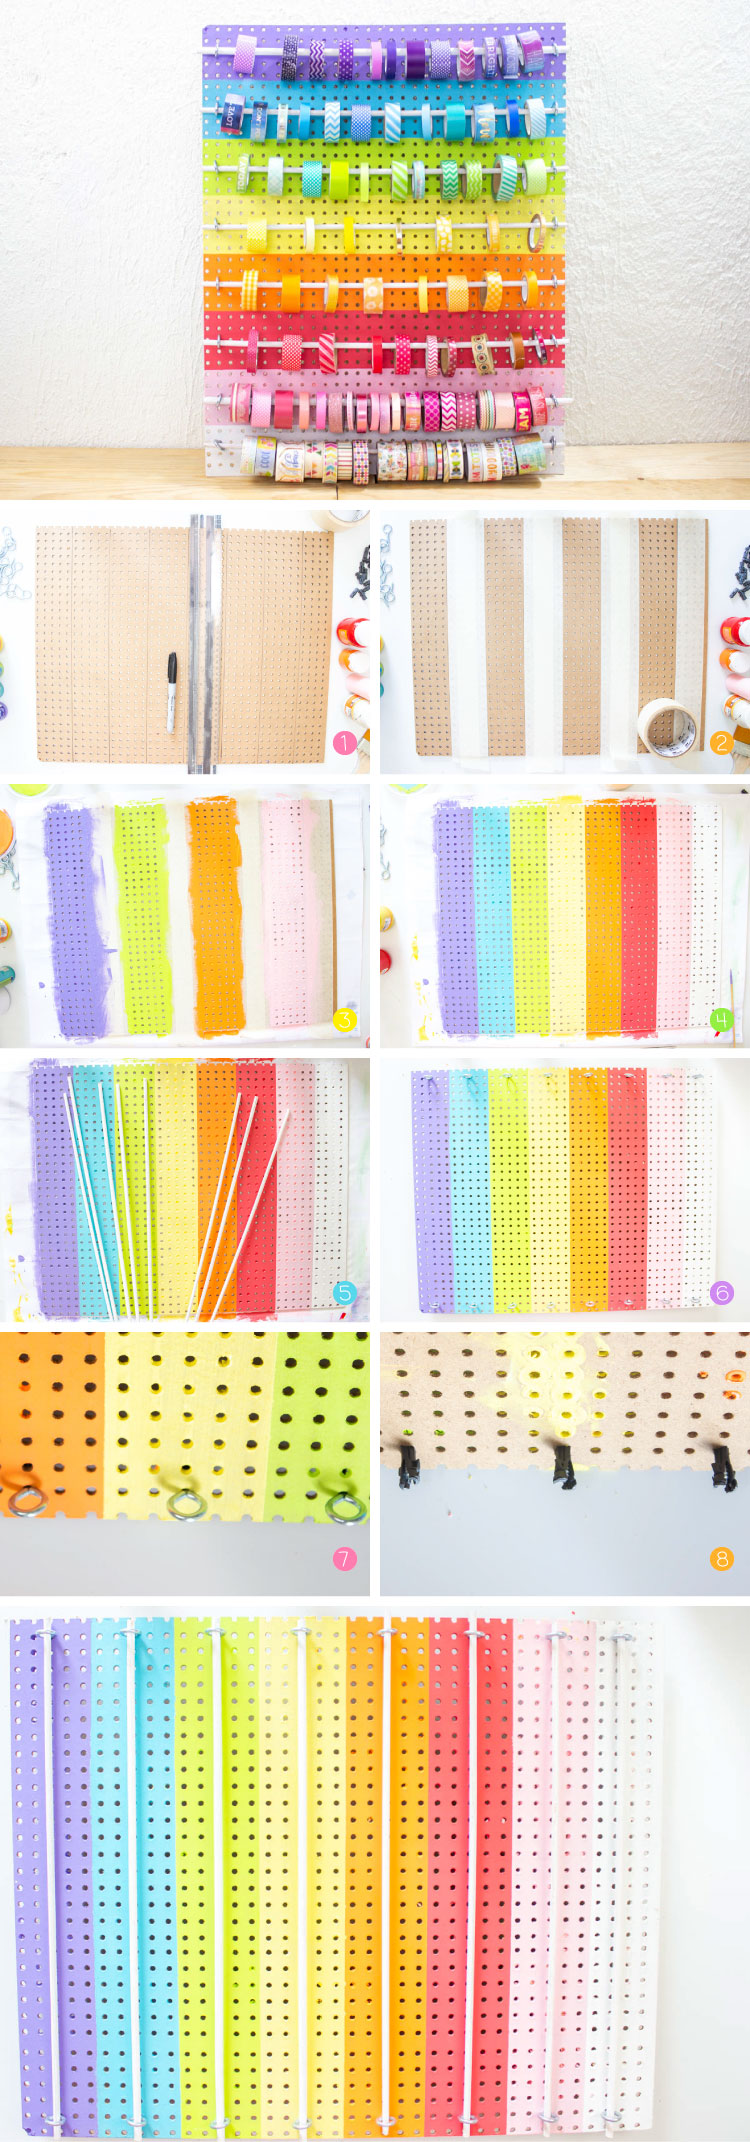 organizador washi tapes